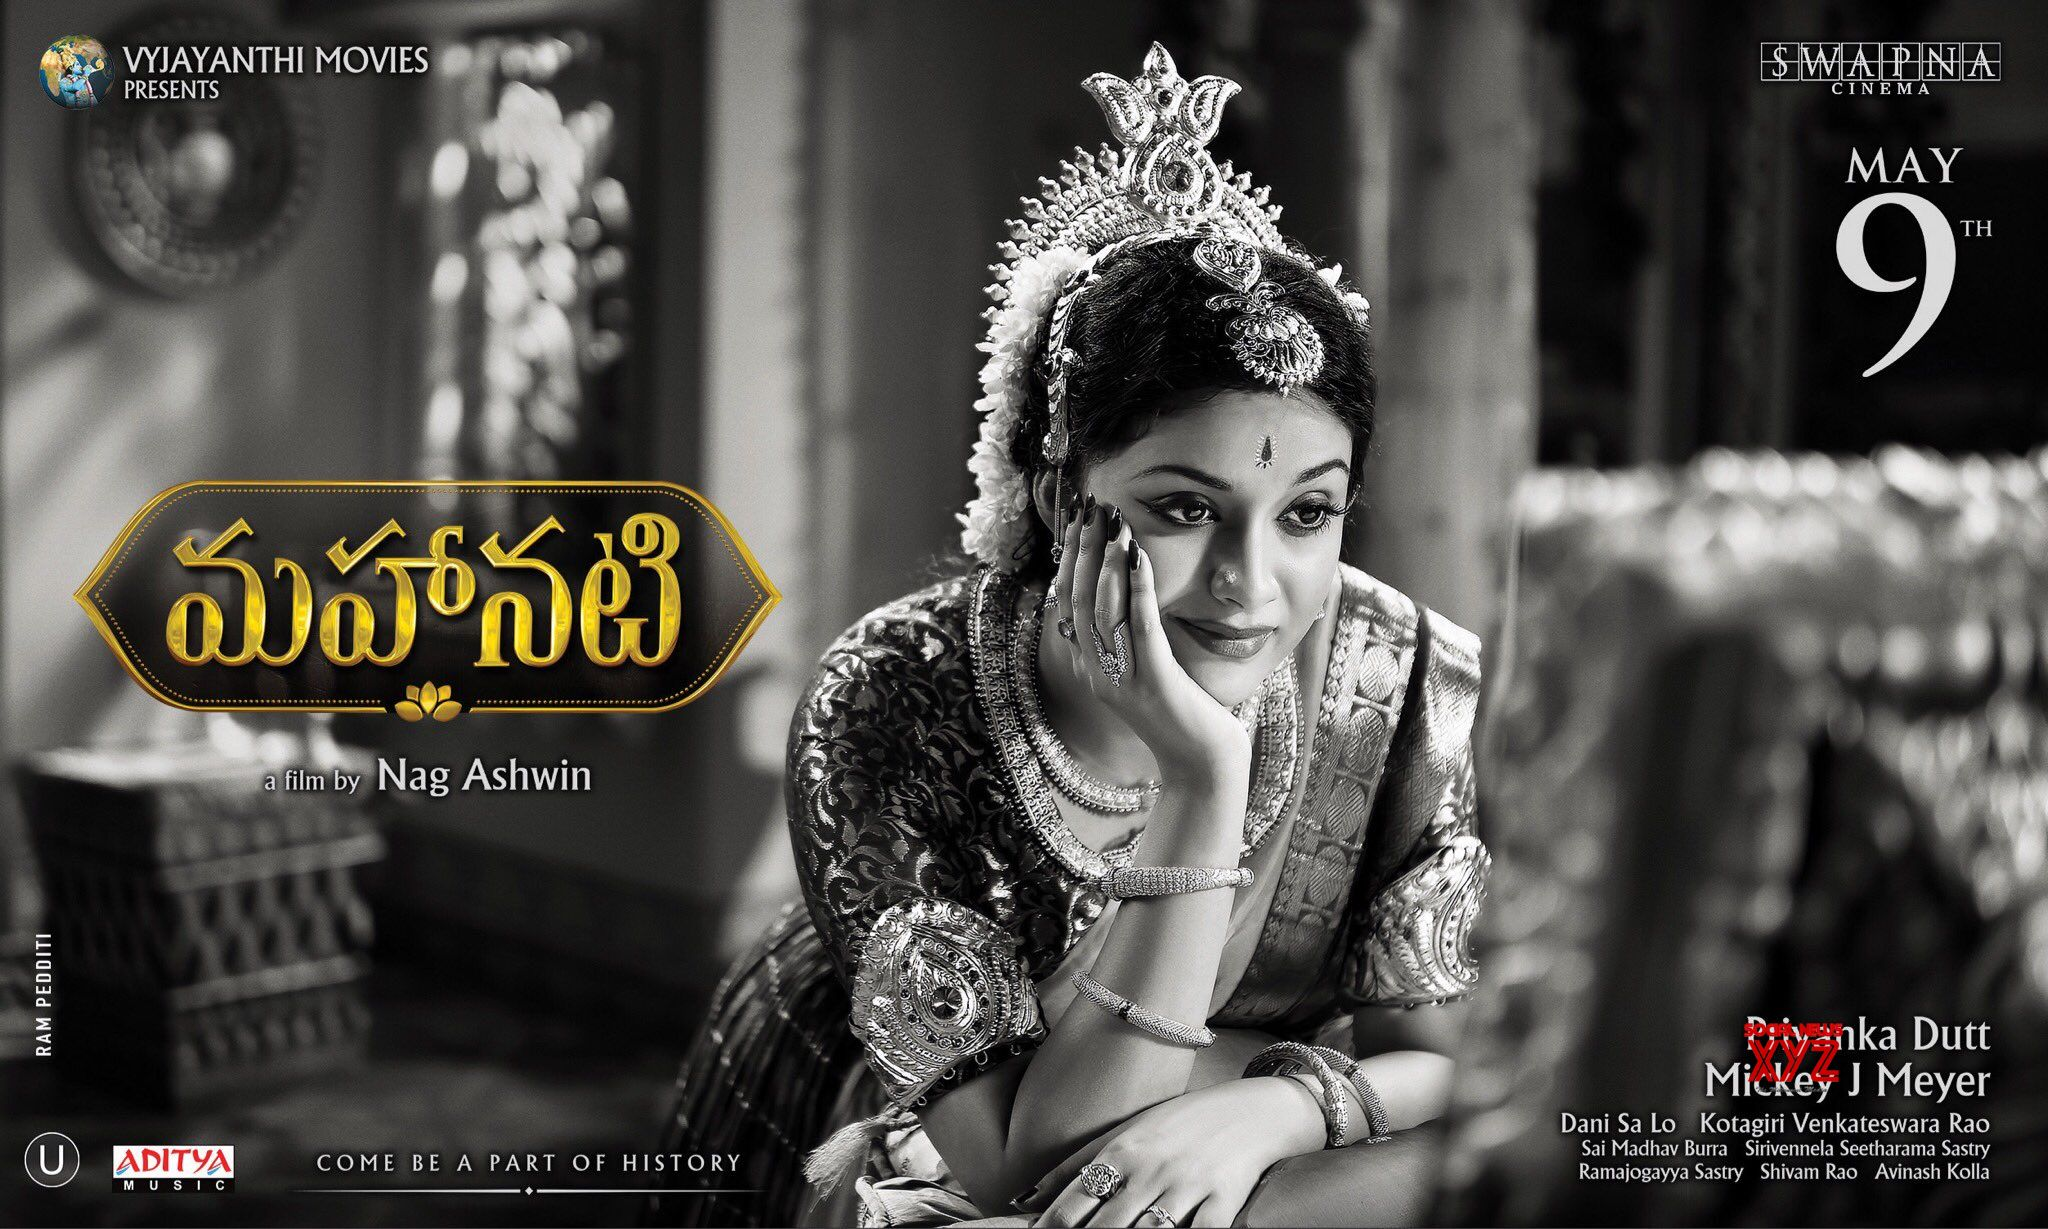 Mahanati Review: A perfect homage to Mahanati Savitri (Rating: 4.0)